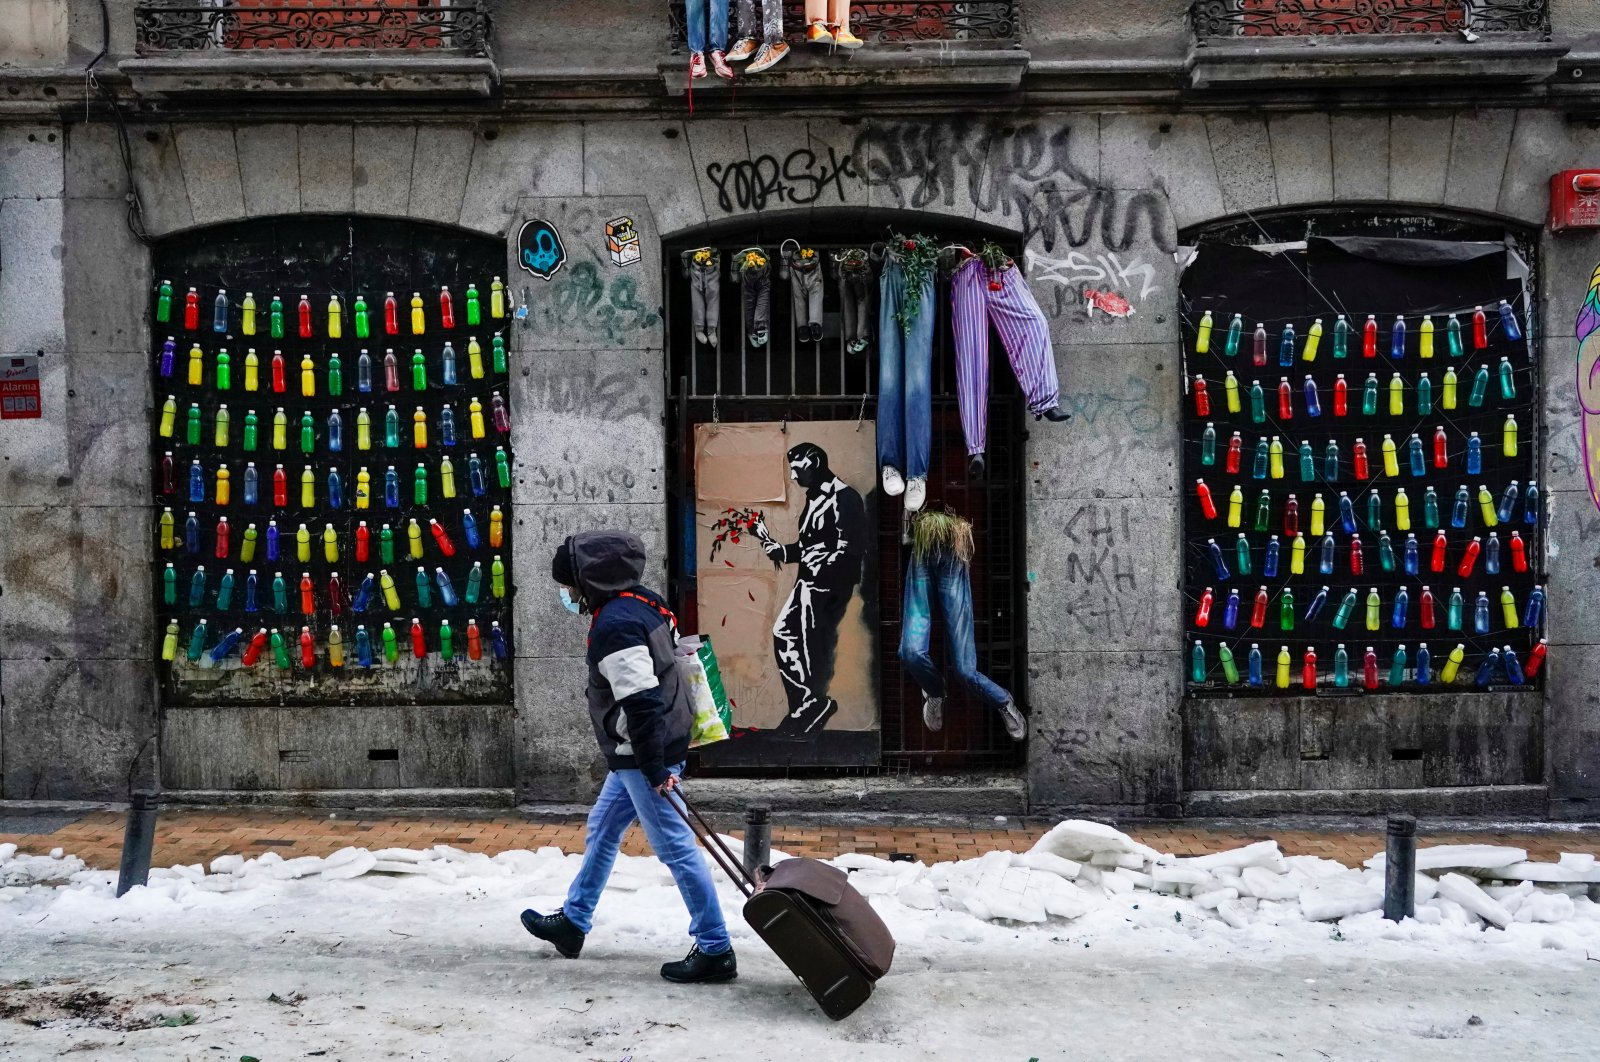 A man walks with a suitcase on a snow-covered street in the center of Madrid, Spain, Jan. 13, 2021. (Reuters Photo)